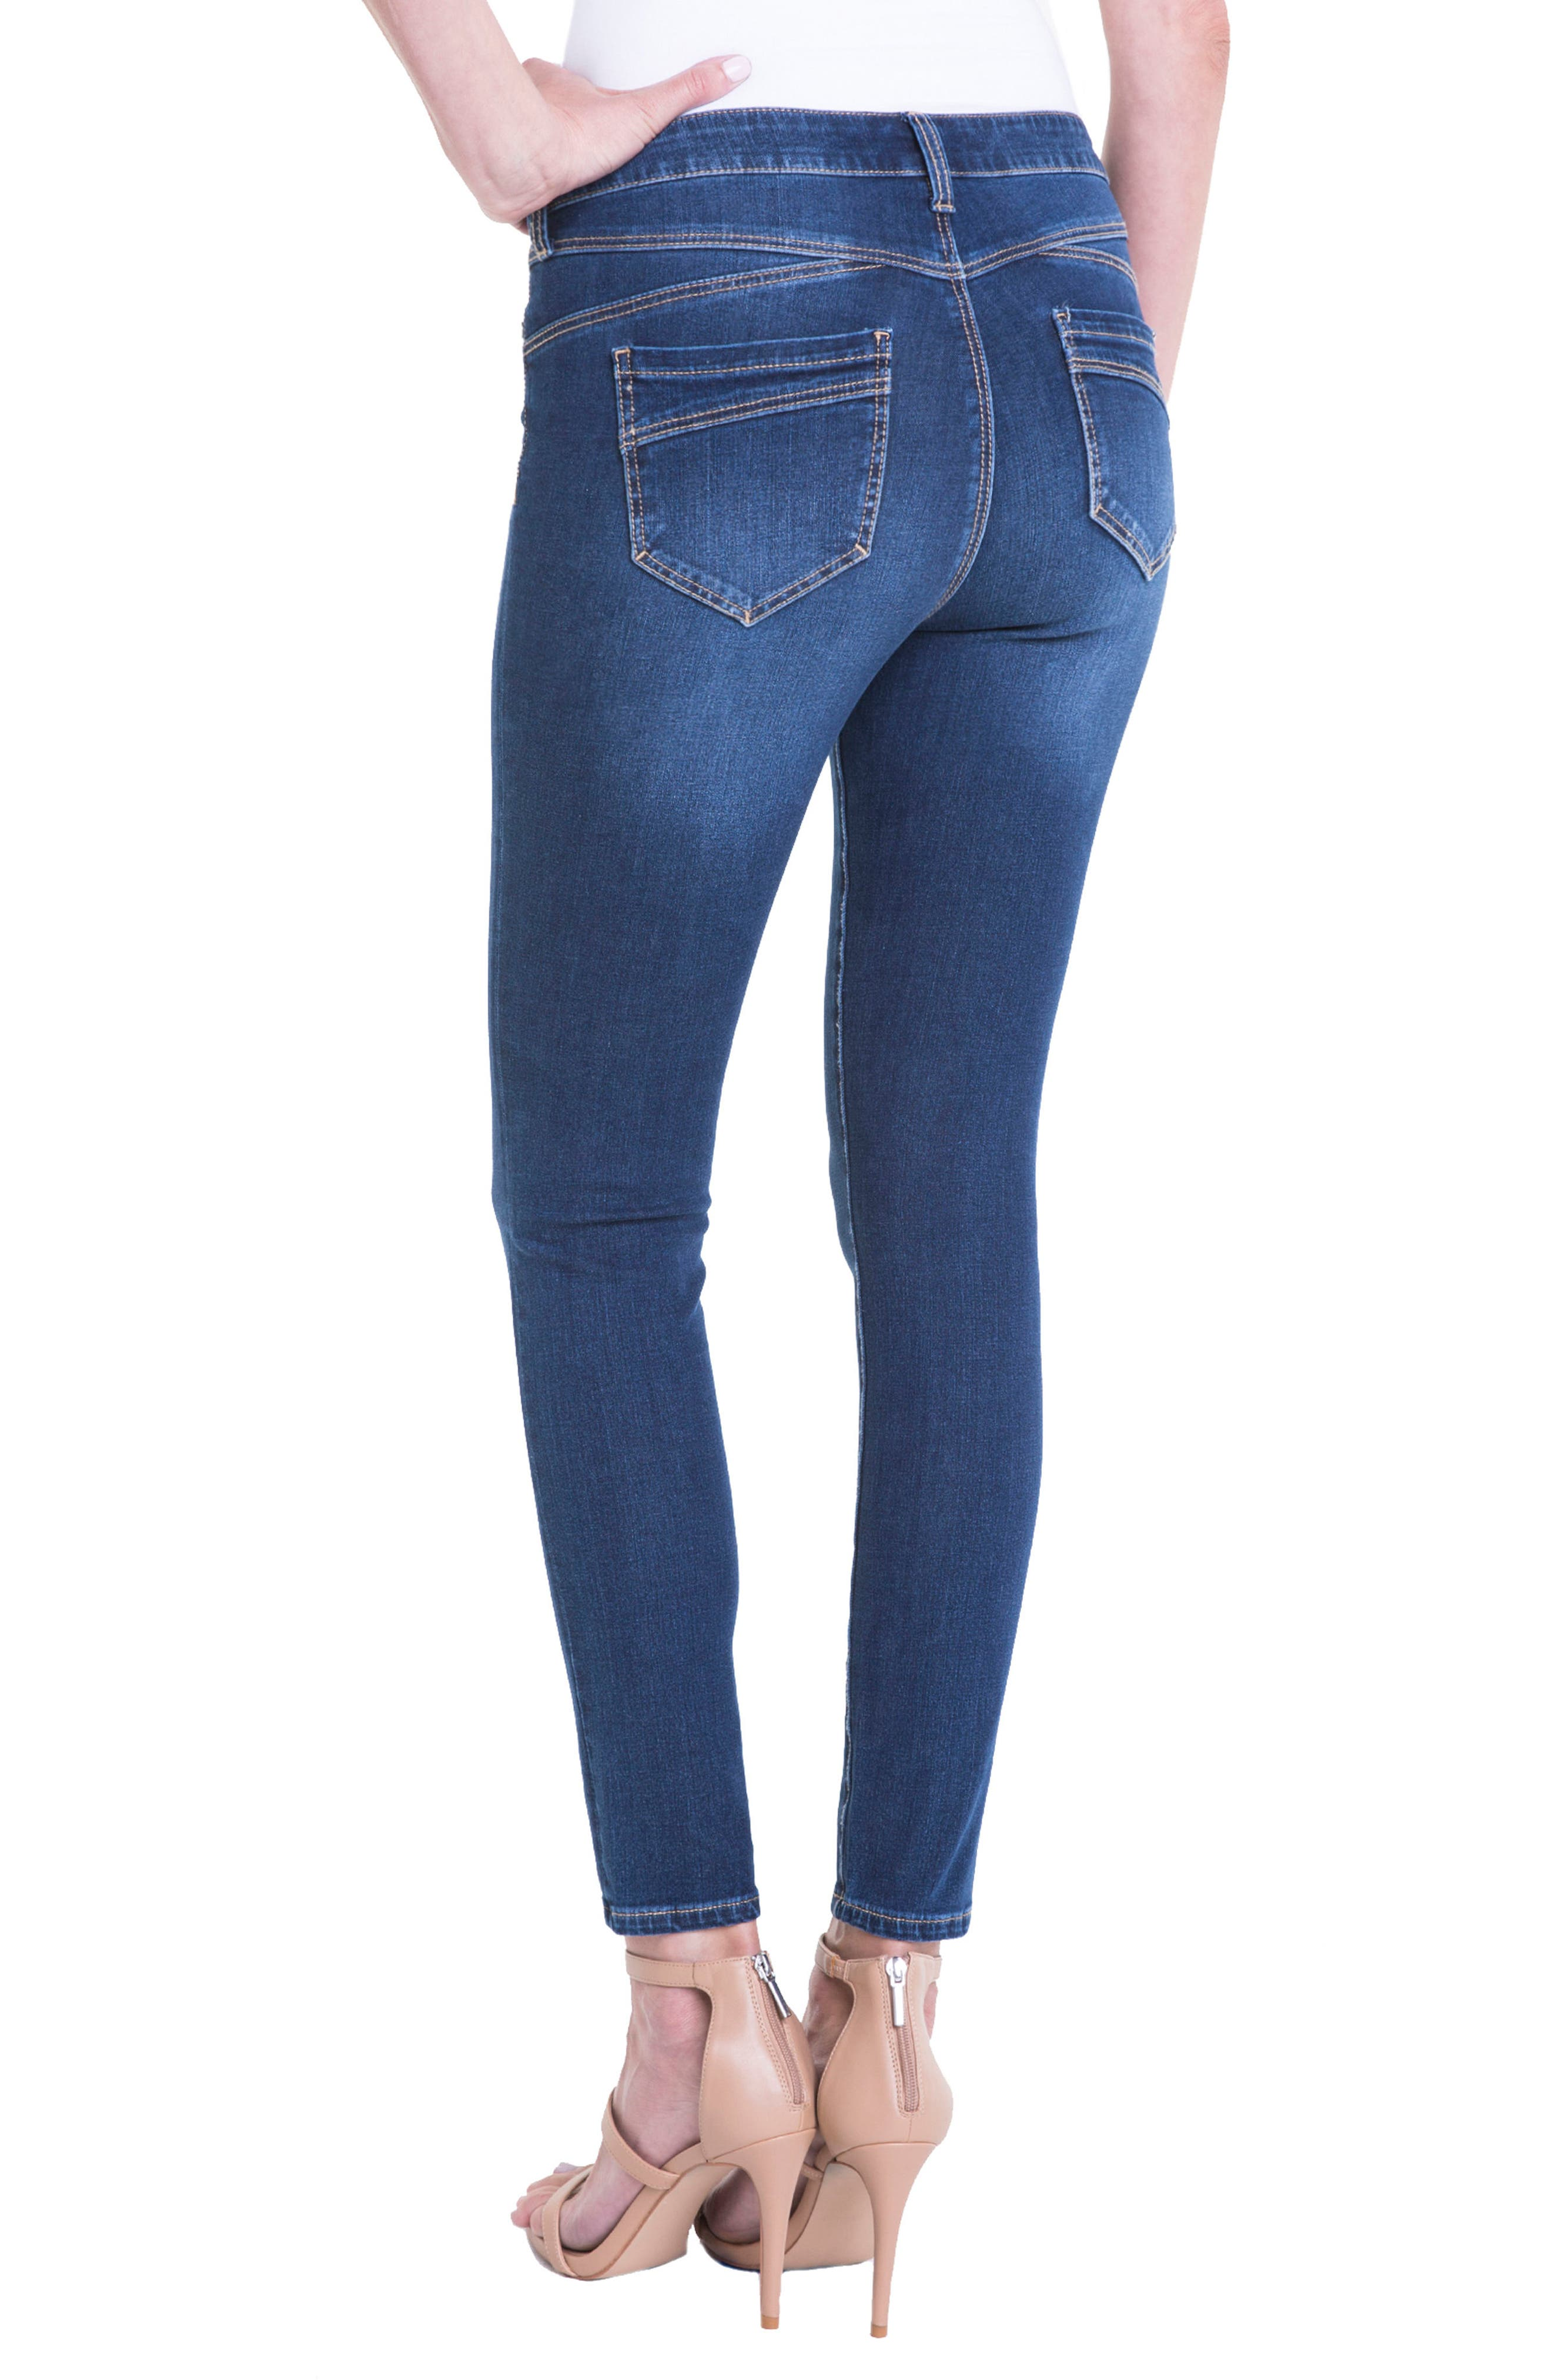 Jeans Company Piper Hugger Lift Sculpt Ankle Skinny Jeans,                             Alternate thumbnail 4, color,                             Lynx Wash